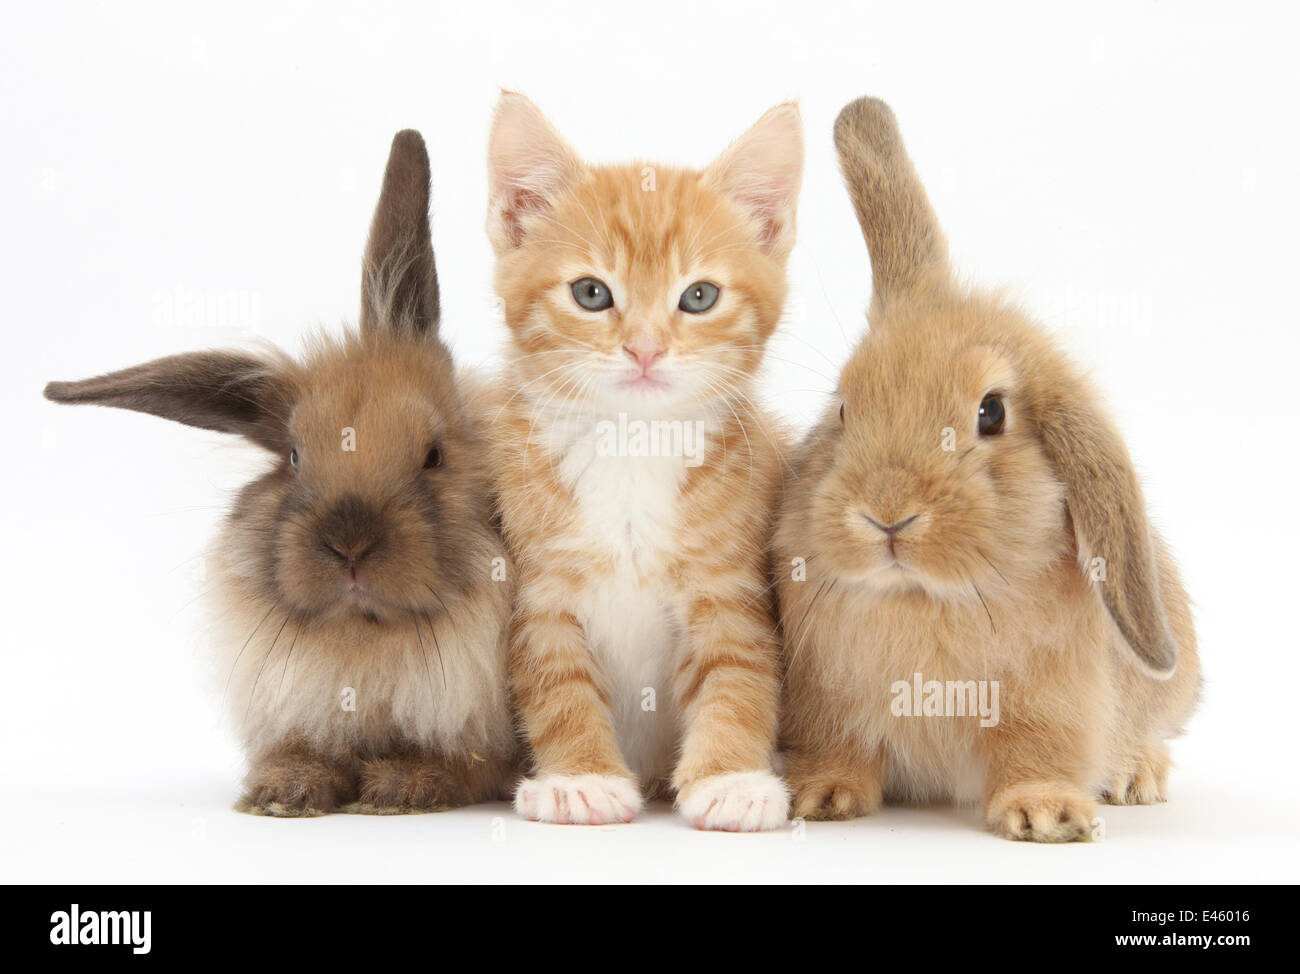 Ginger kitten, 7 weeks, sitting between two young Lionhead-Lop rabbits. - Stock Image